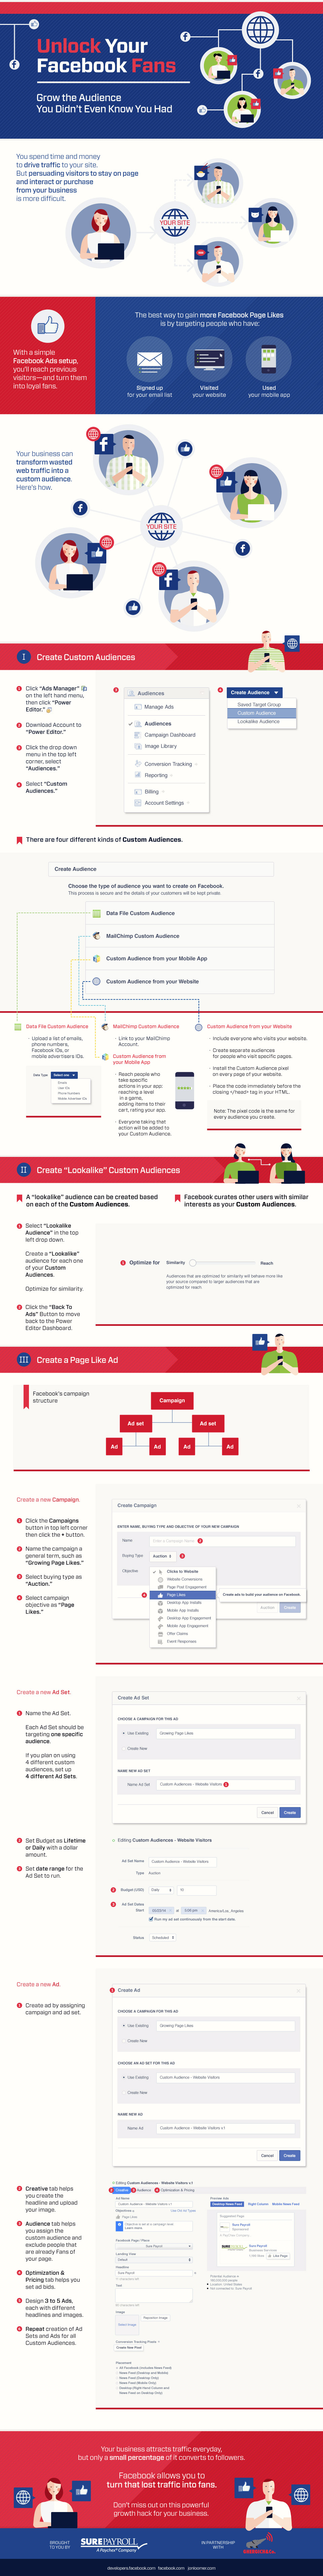 Facebook-Ad-Infographic